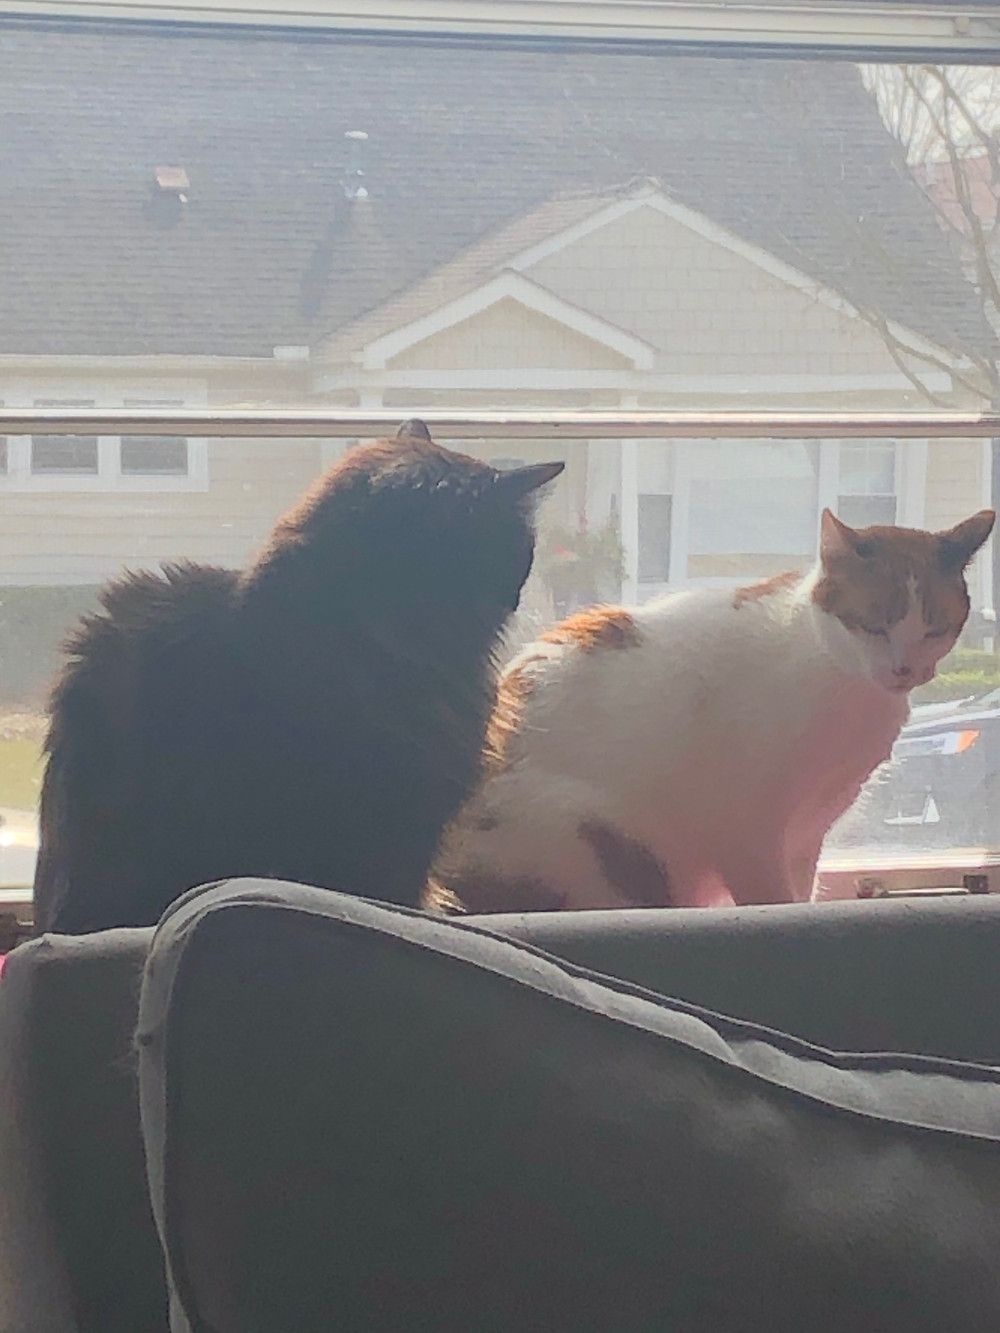 my cats, oblivious to the horrors